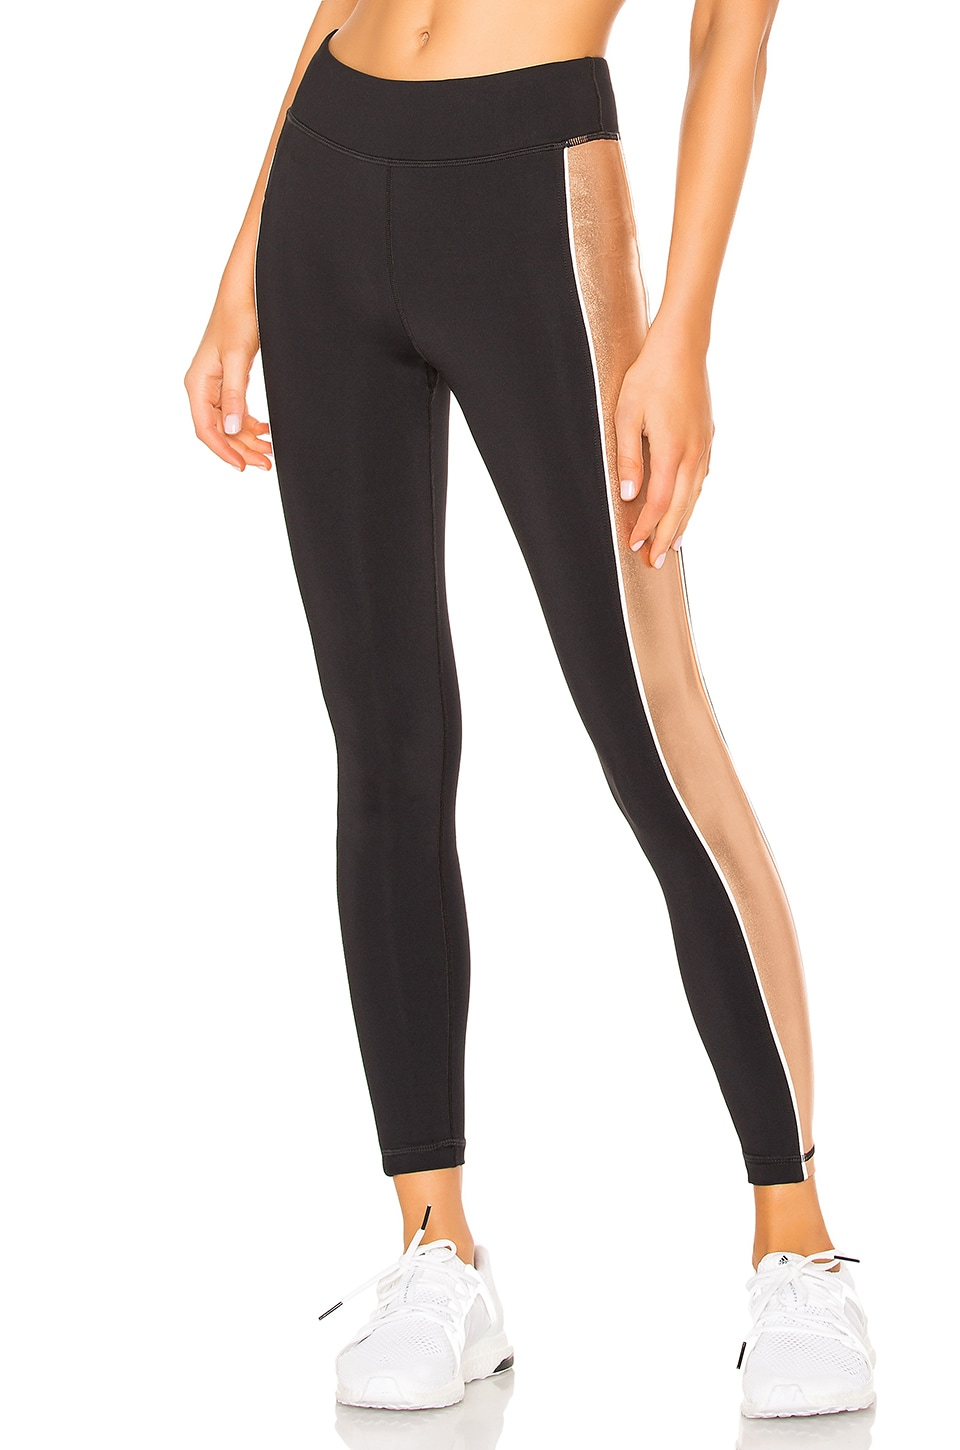 Vimmia LEGGINGS RADIANT